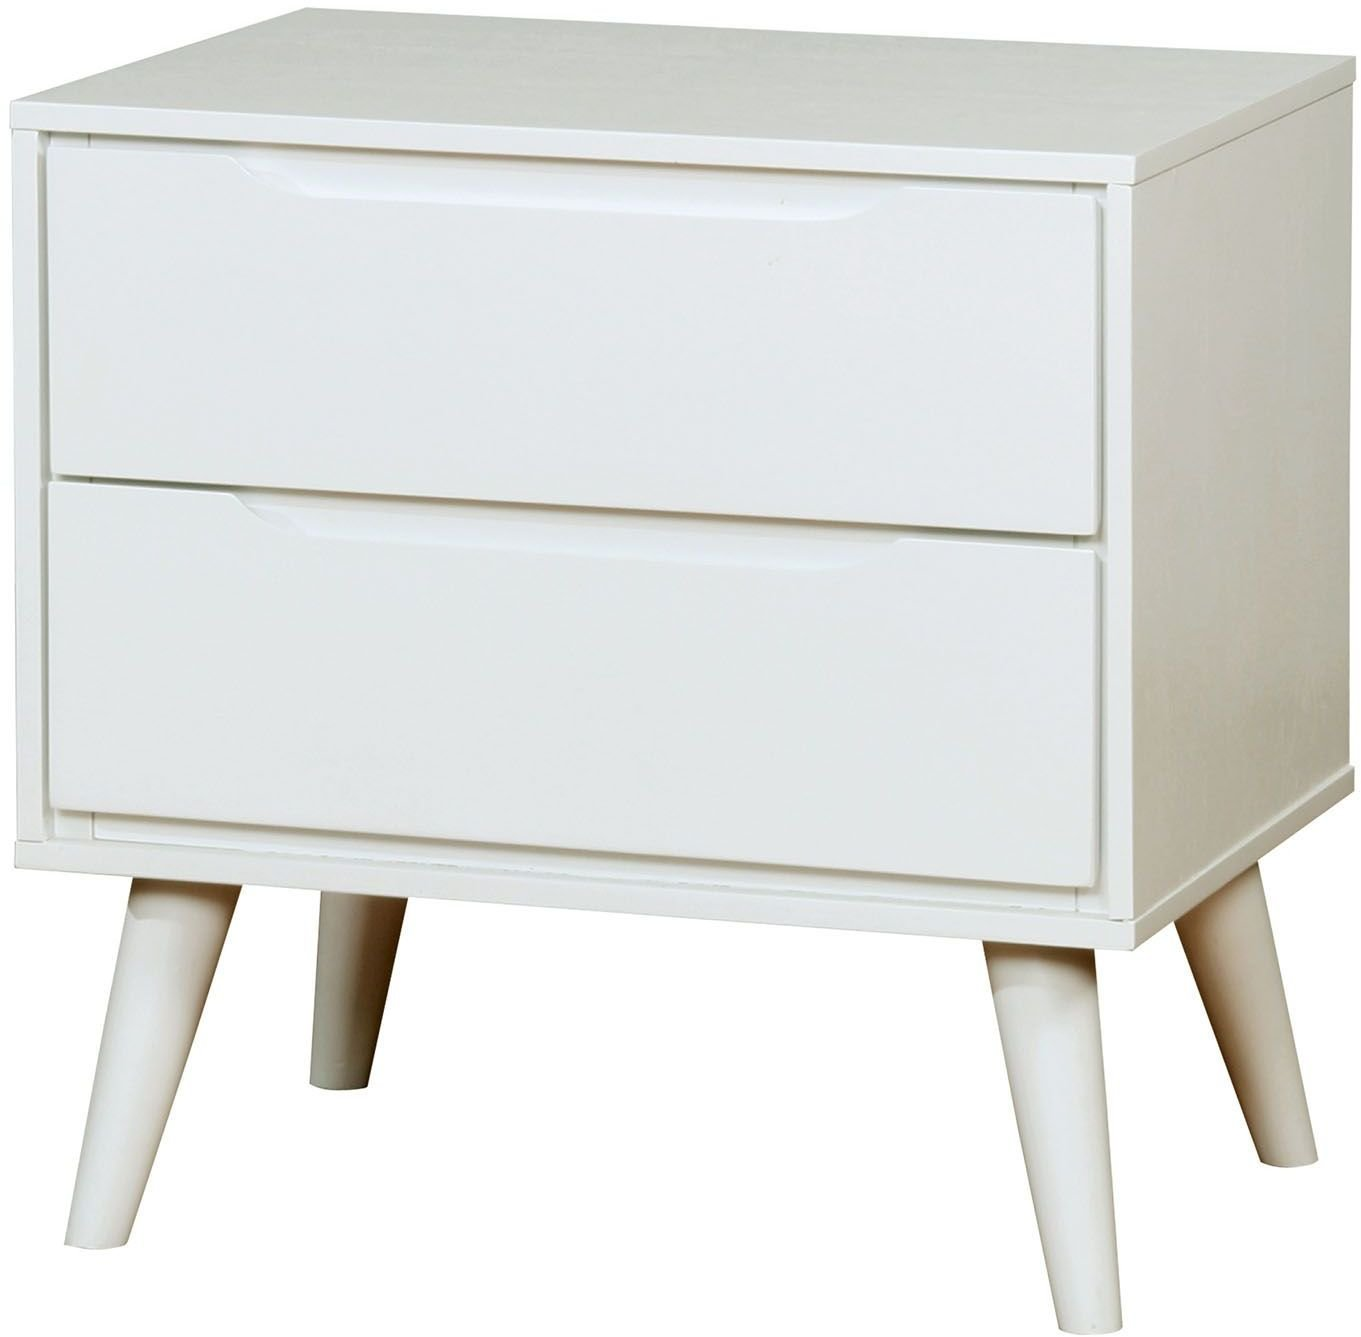 "Furniture of America CM7386WH-N Lennart II White Night Stand Nightstands, 24"" H - Part of lennart II collection Crafted from solid wood and wood veneers White Finish - nightstands, bedroom-furniture, bedroom - 61AE5MUo%2BrL -"